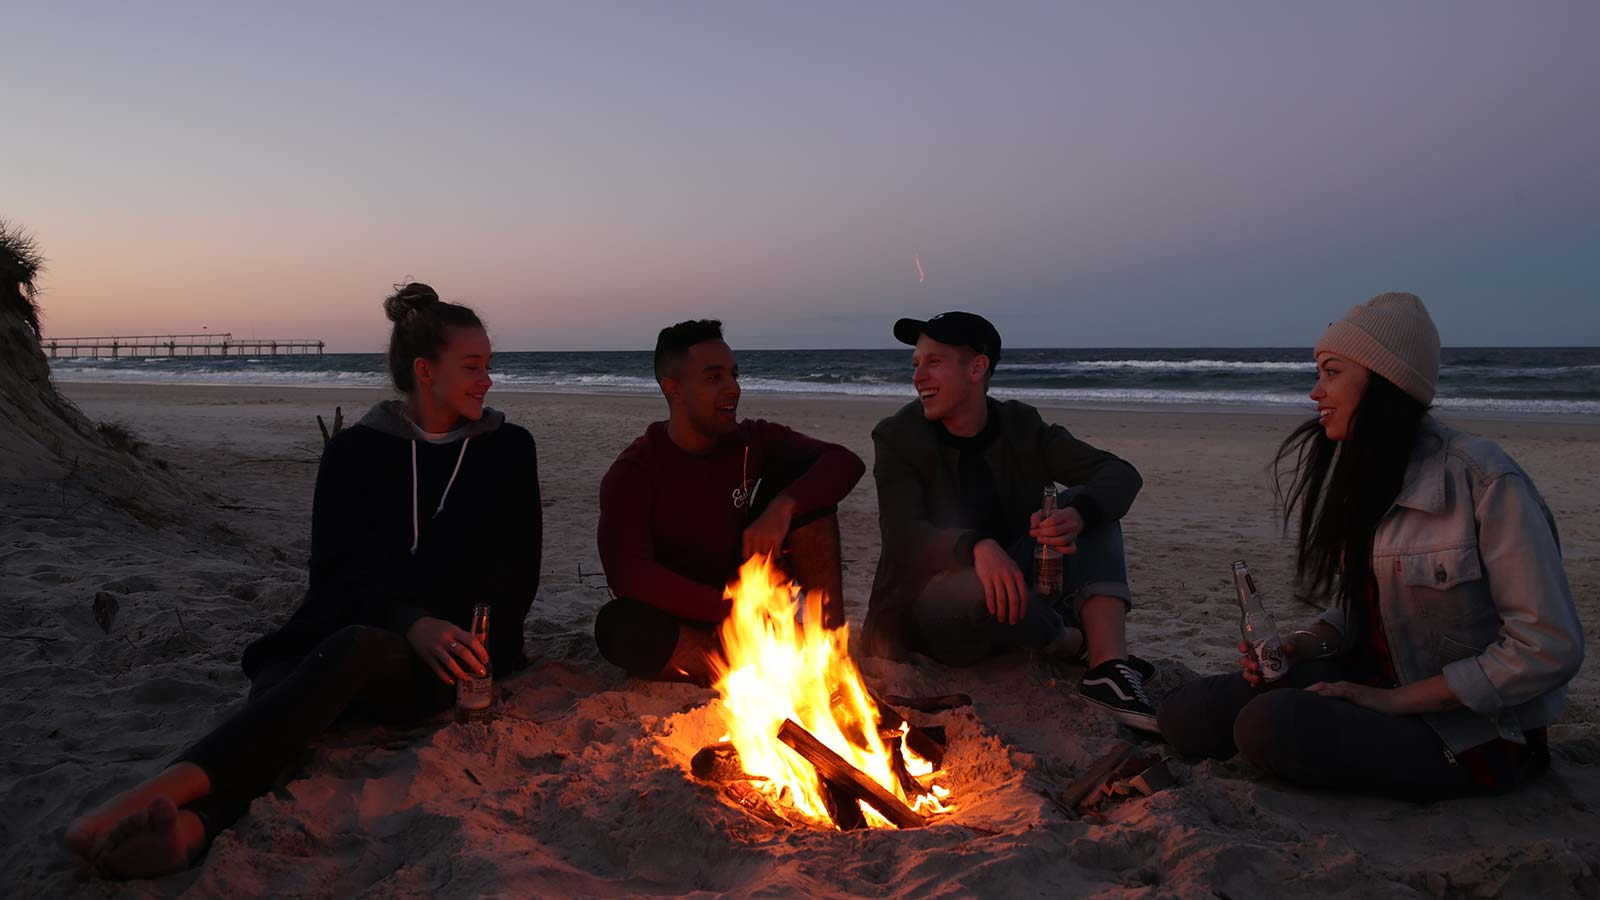 people around a campfire on the beach